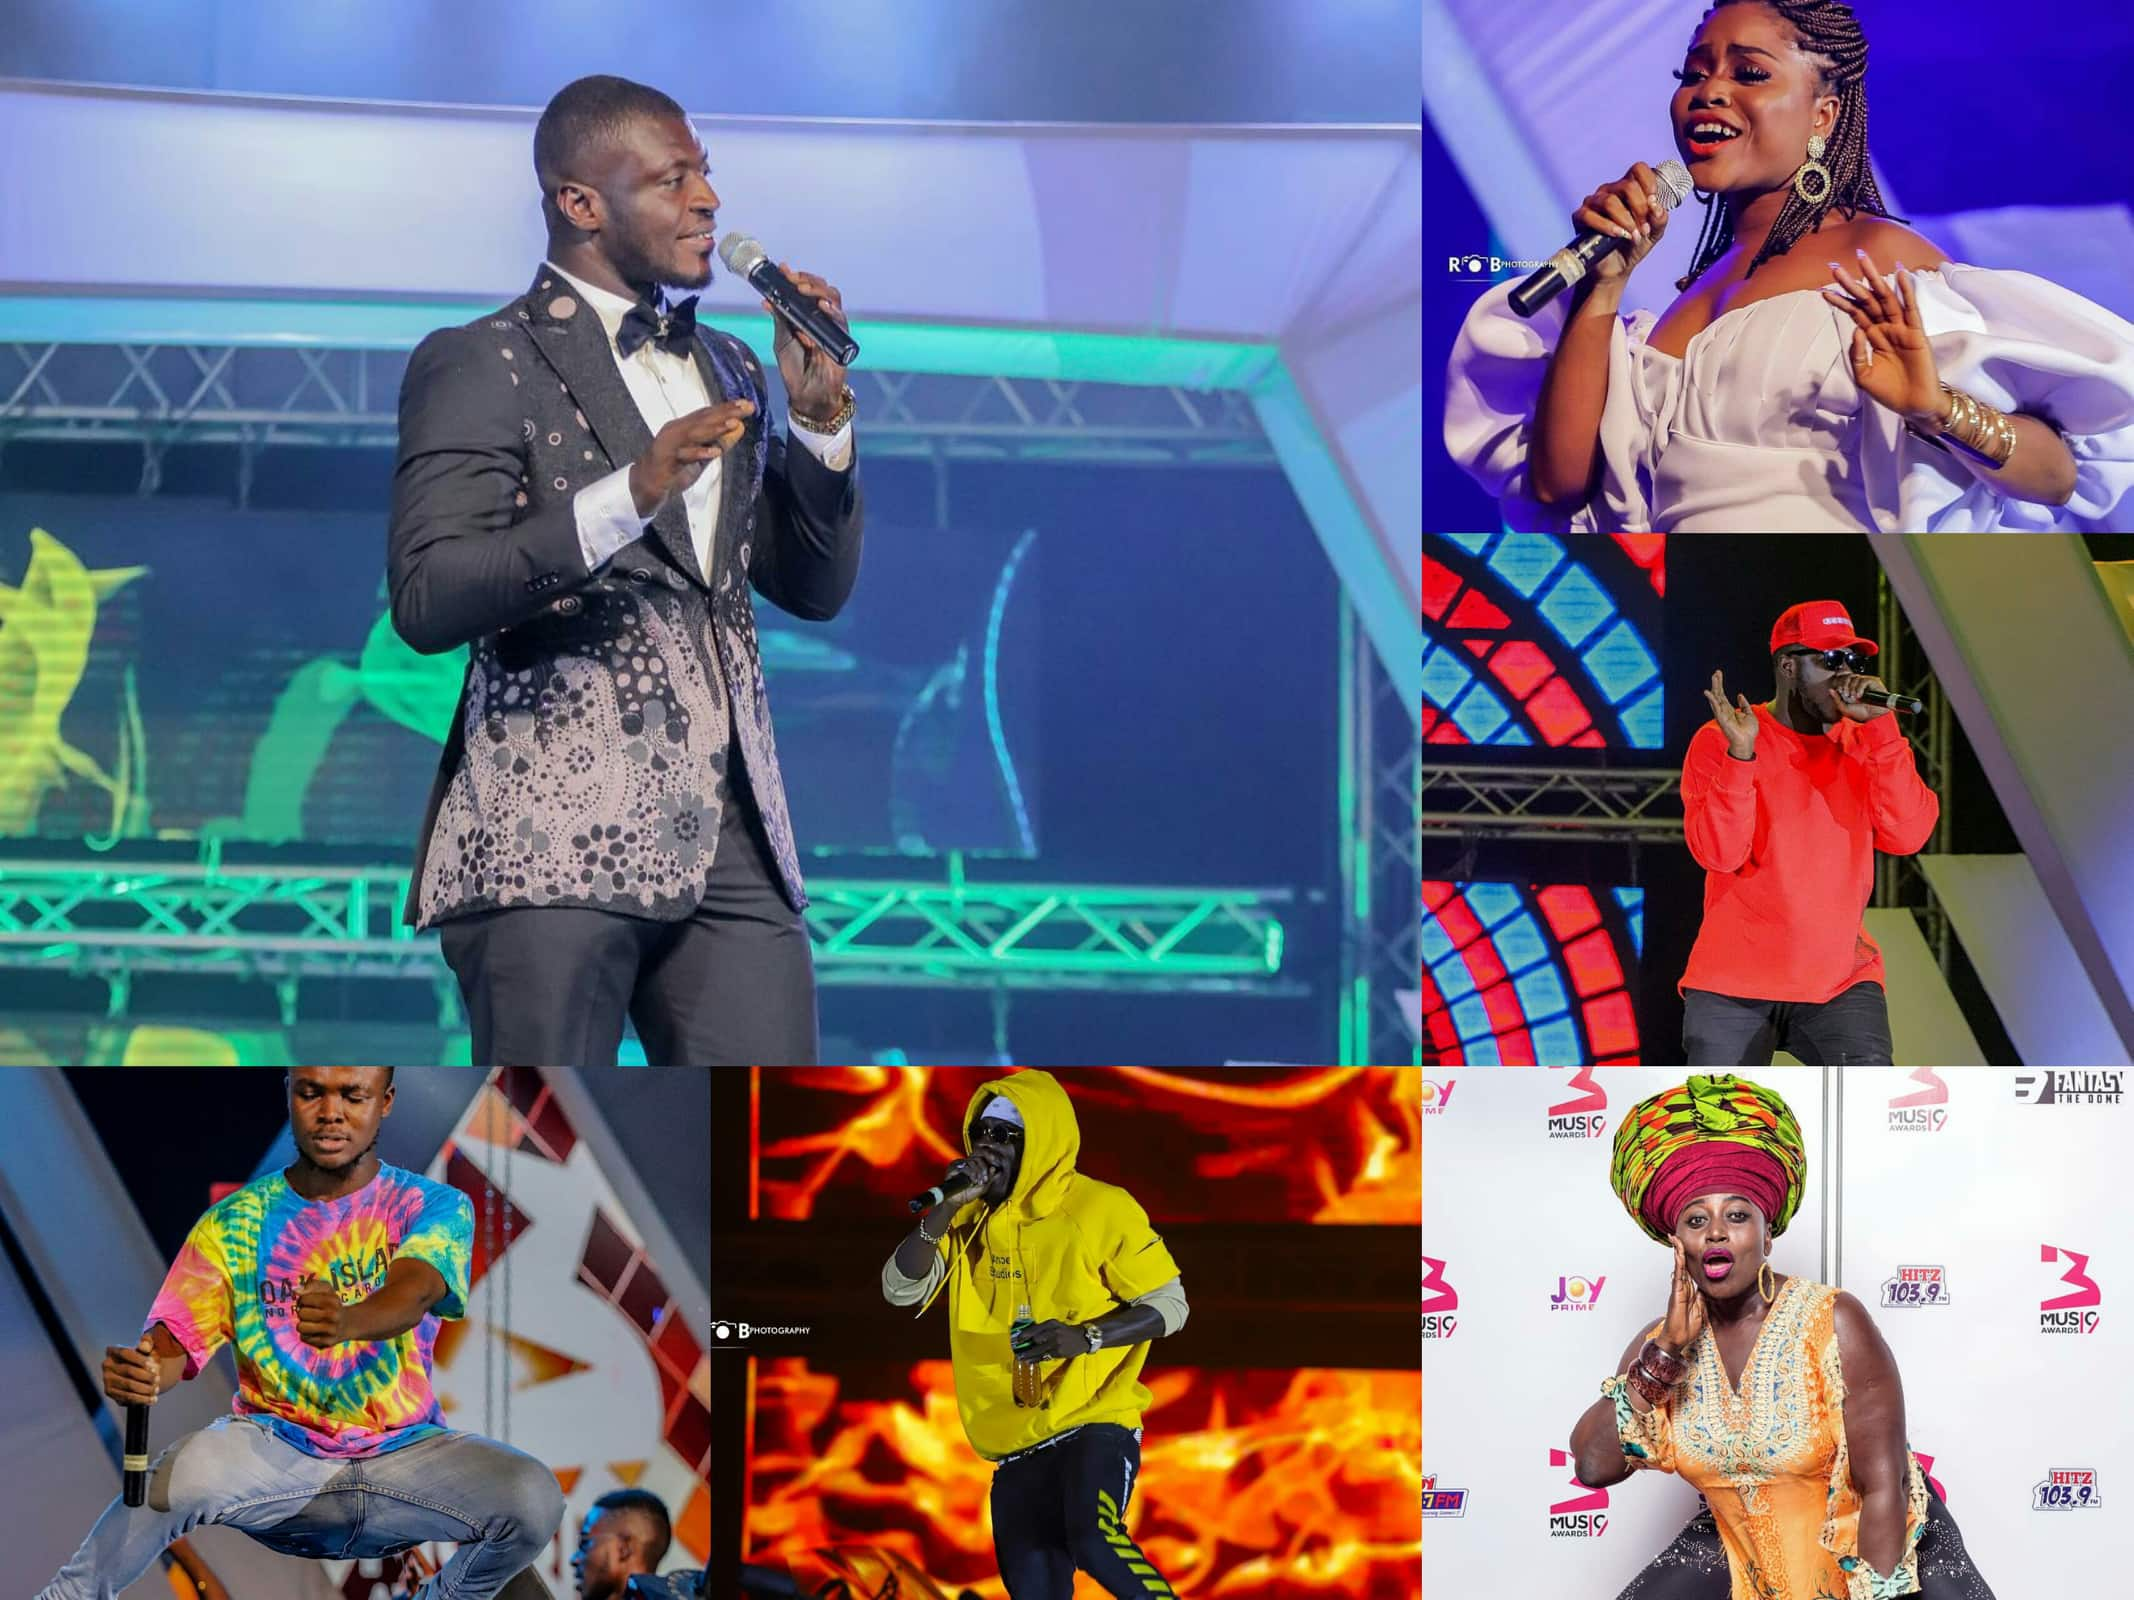 #3MusicAwards19: Epic moments in photos